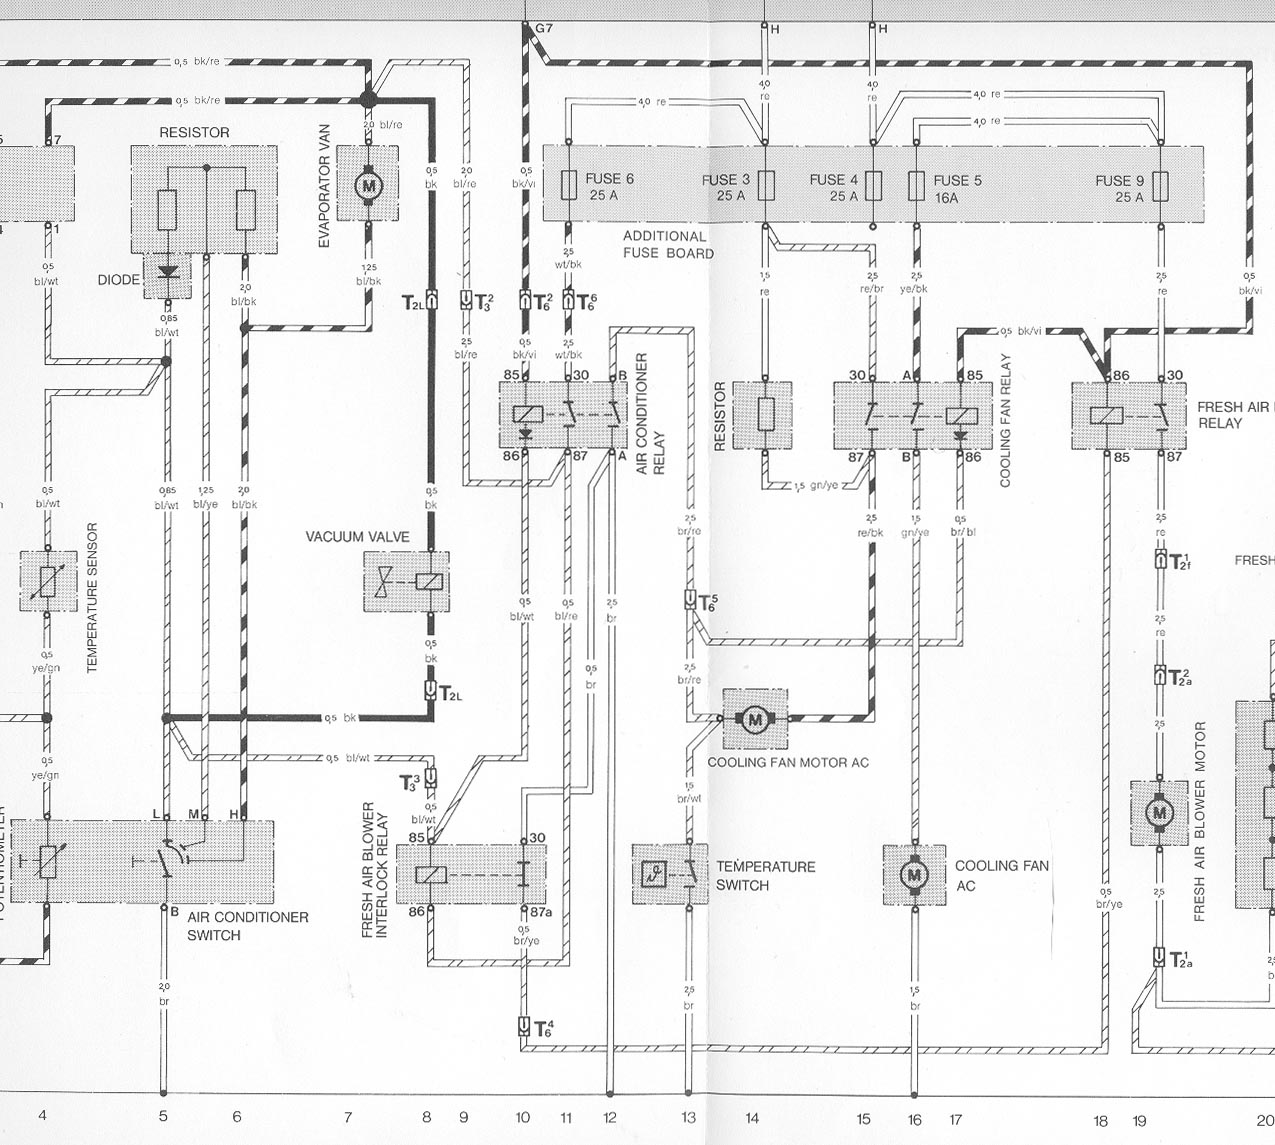 hight resolution of 84 porsche 944 fuse box diagram